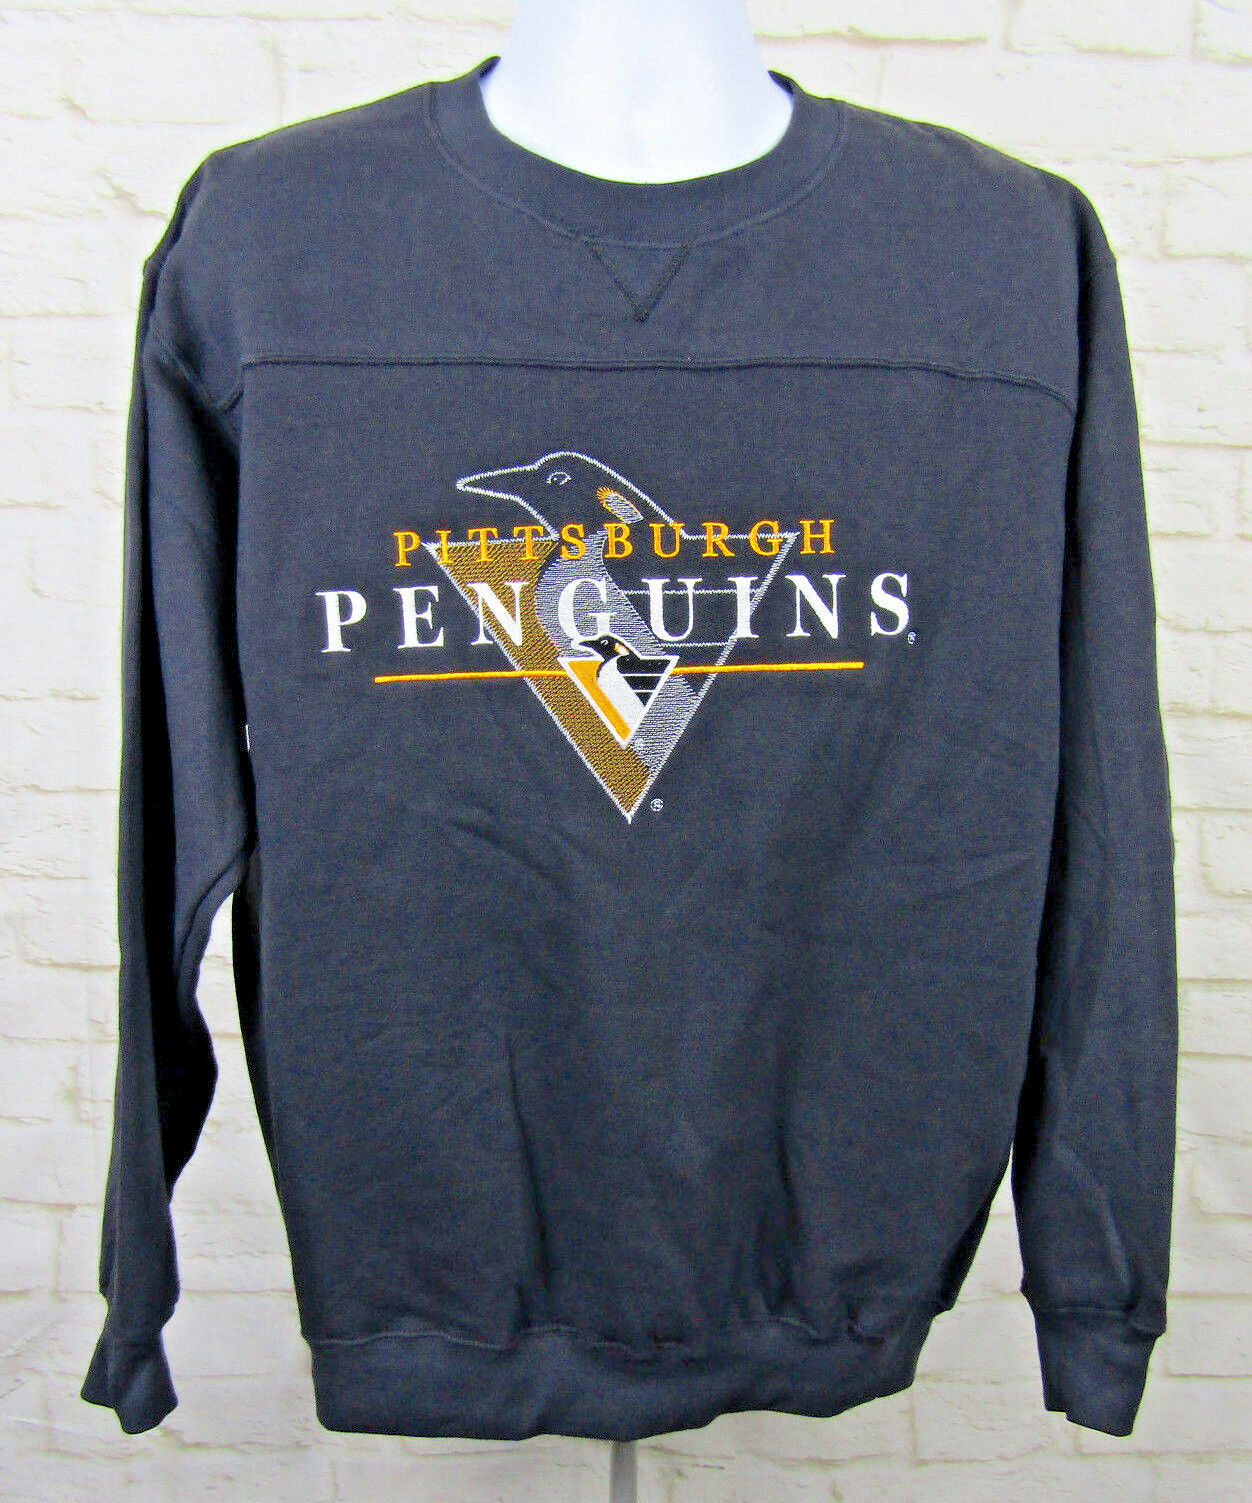 540636a5601 Pittsburgh Penguins Vtg Lee Sports Sweatshirt Sz Mens Medium Black ...